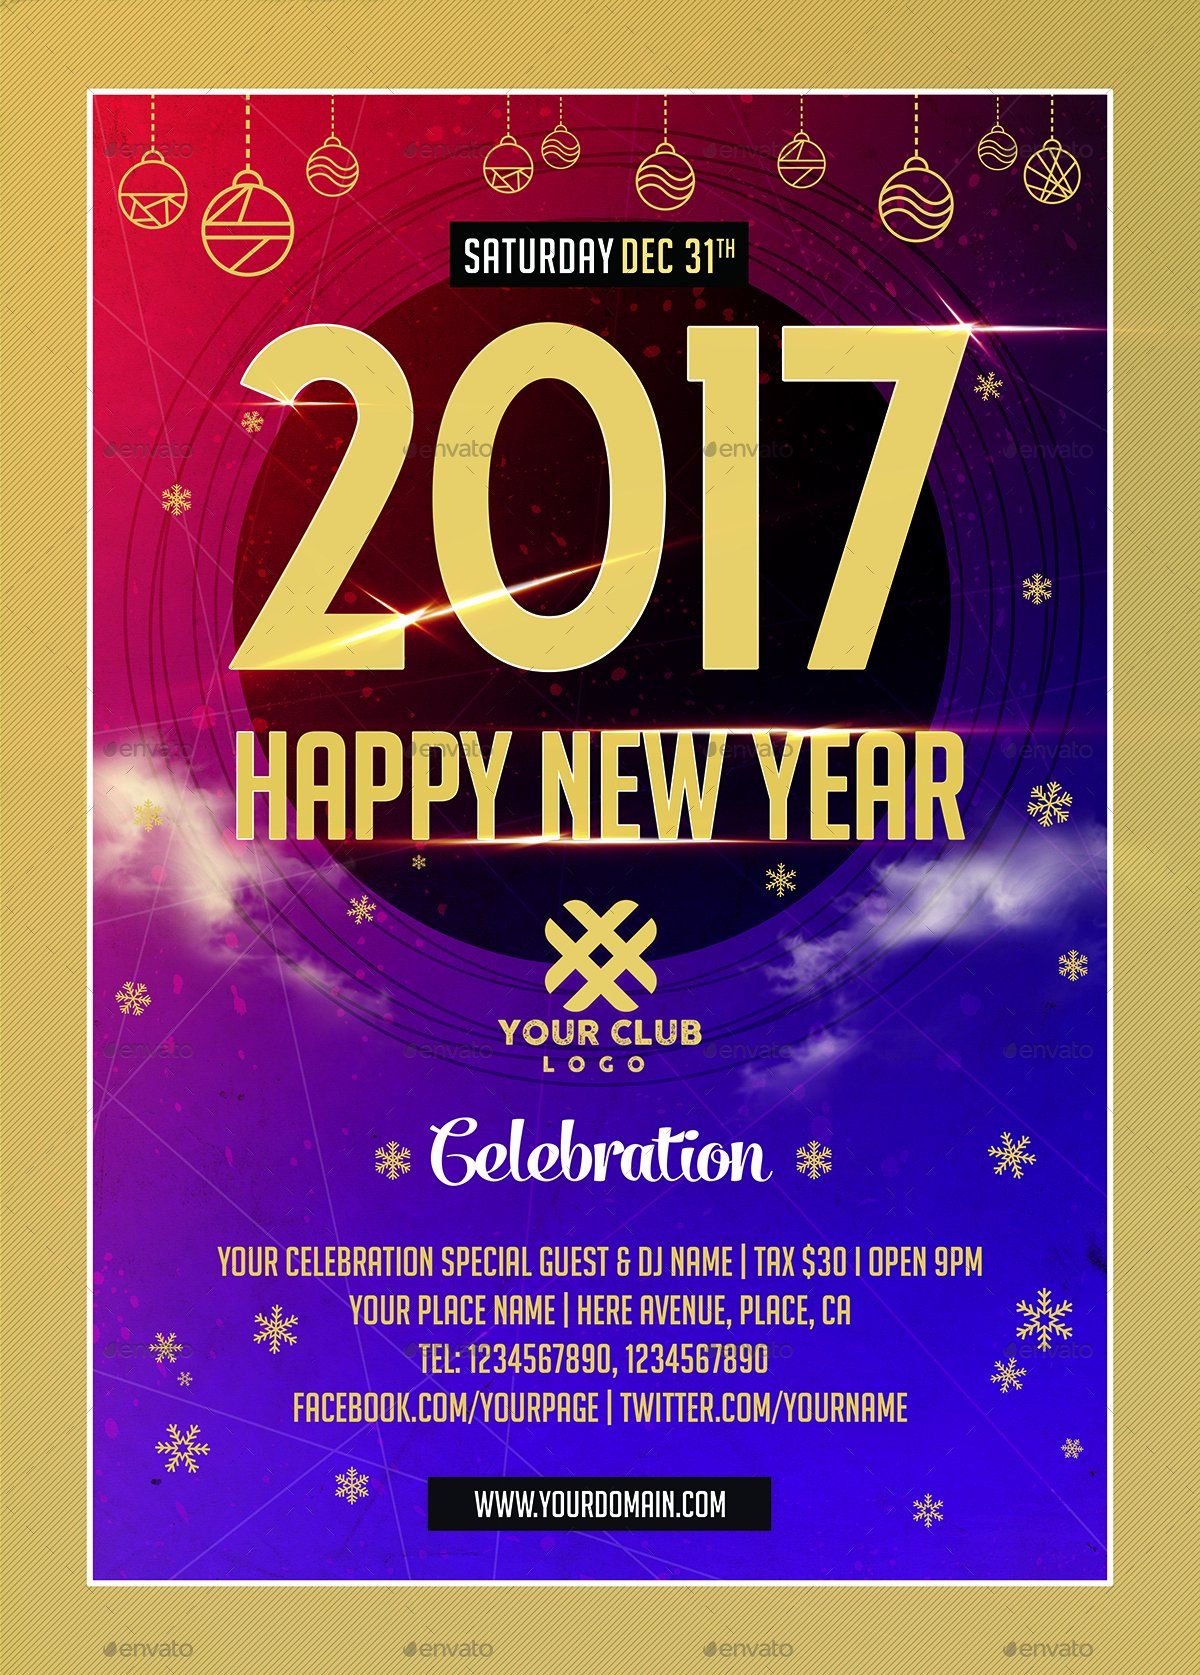 New Year Flyers Template New New Year Celebration Flyer Templates by Xepeec